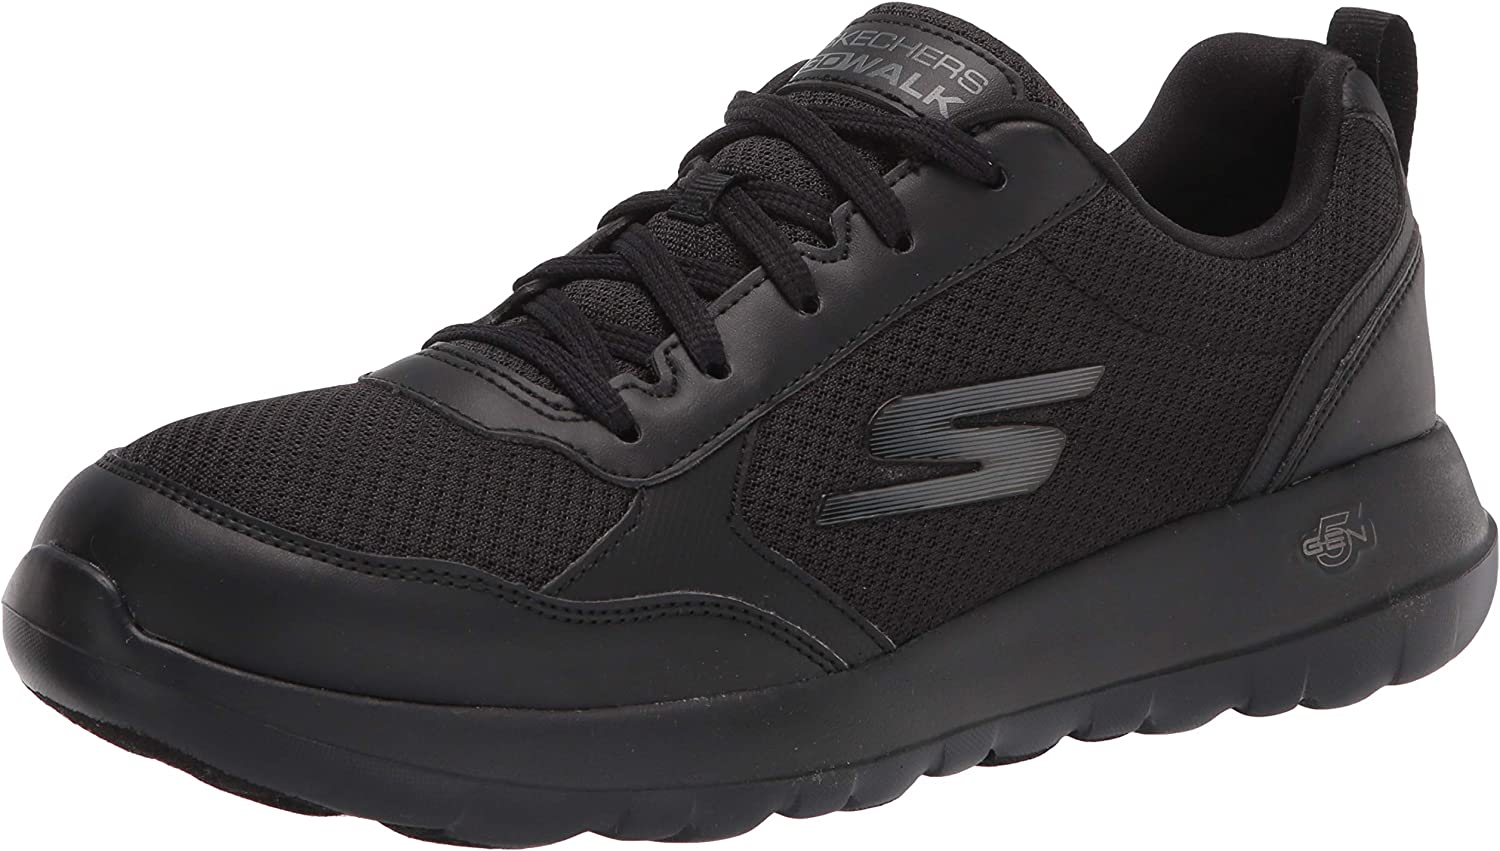 Skechers Men's Gowalk Max 84% OFF Max-Athletic Workout Walking Air Shoe High quality new with